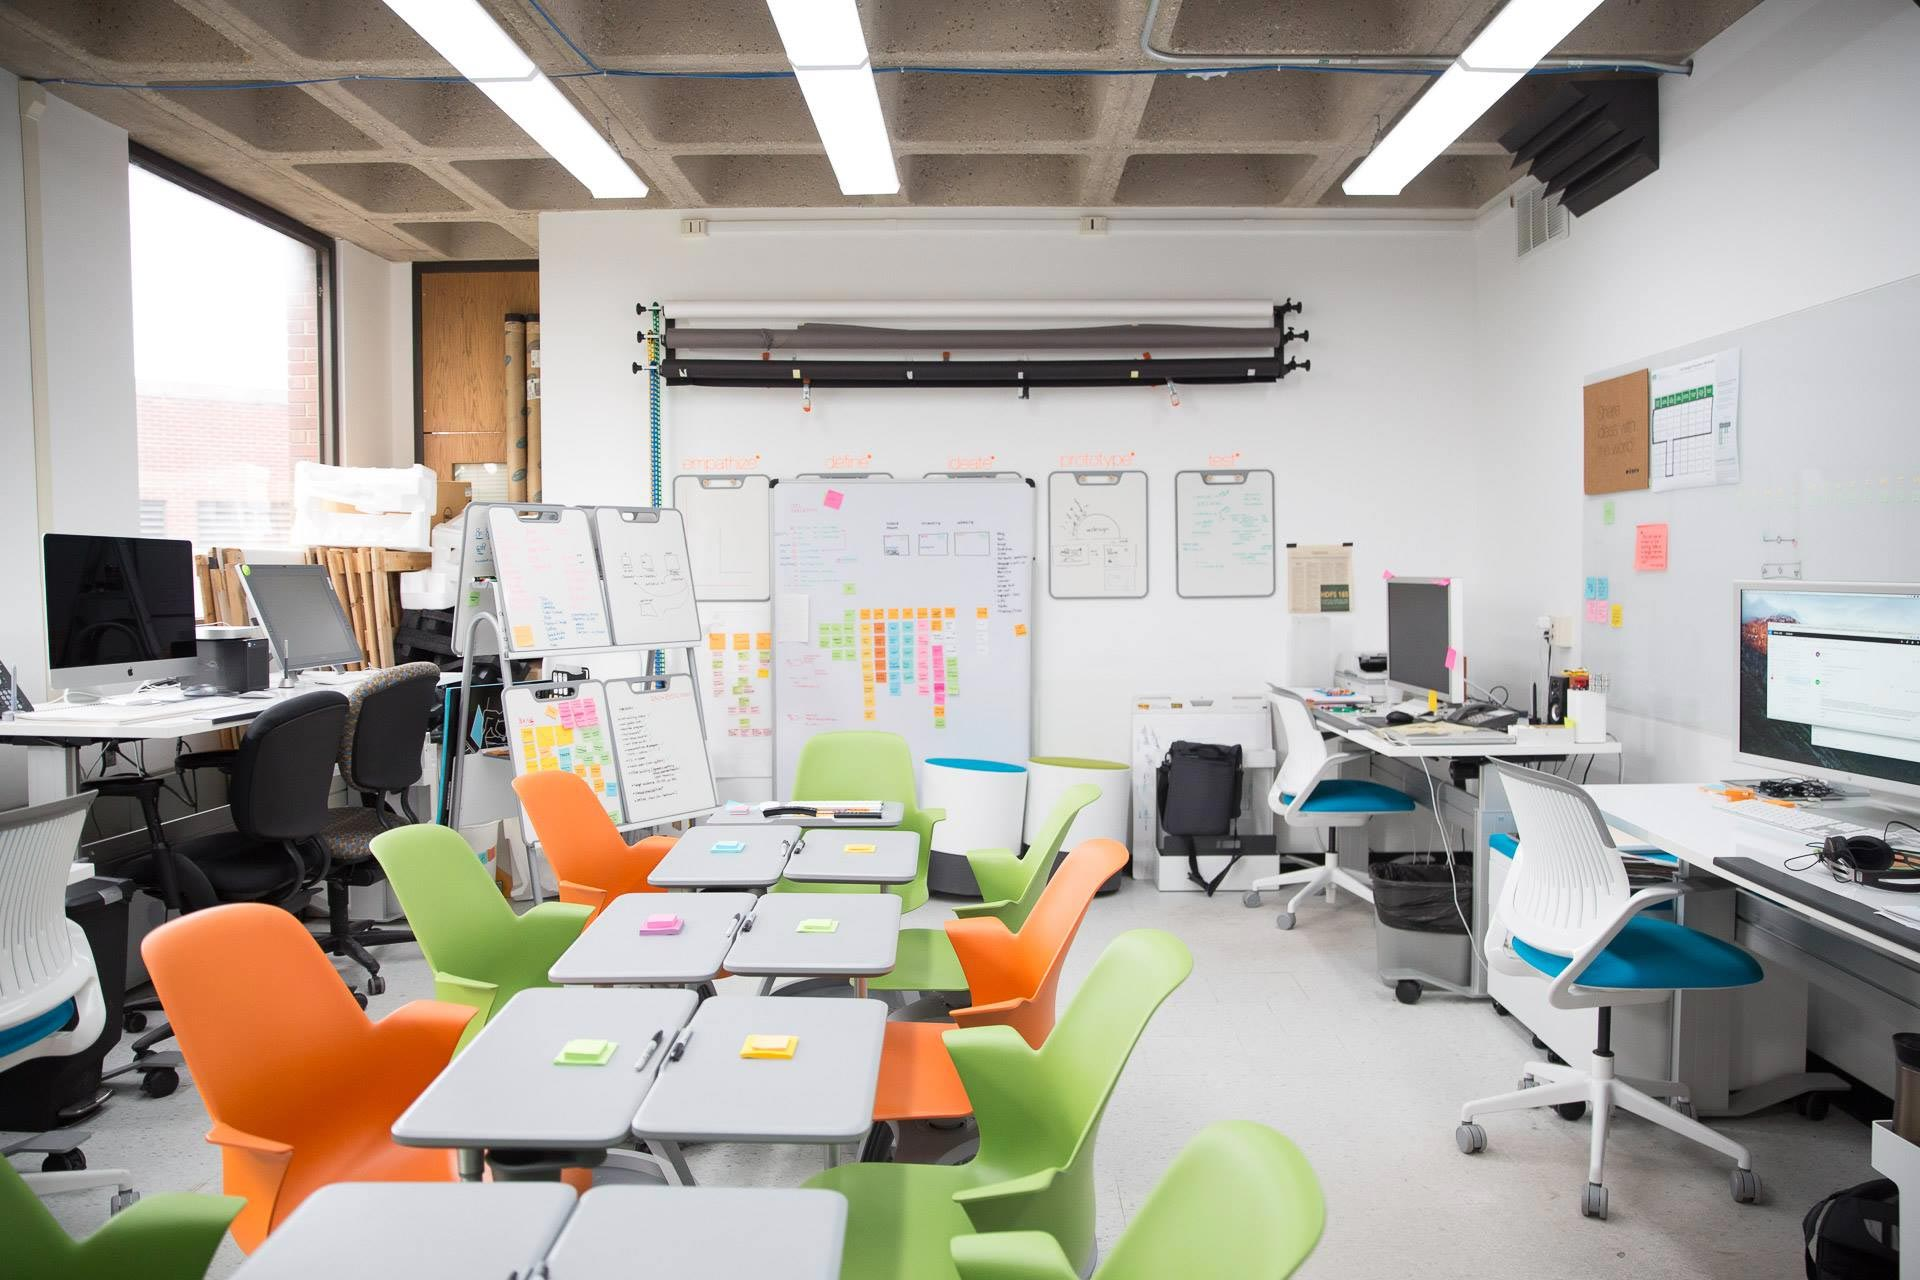 White walled studio with whiteboard, white tables, and gray desks with orange and green chairs